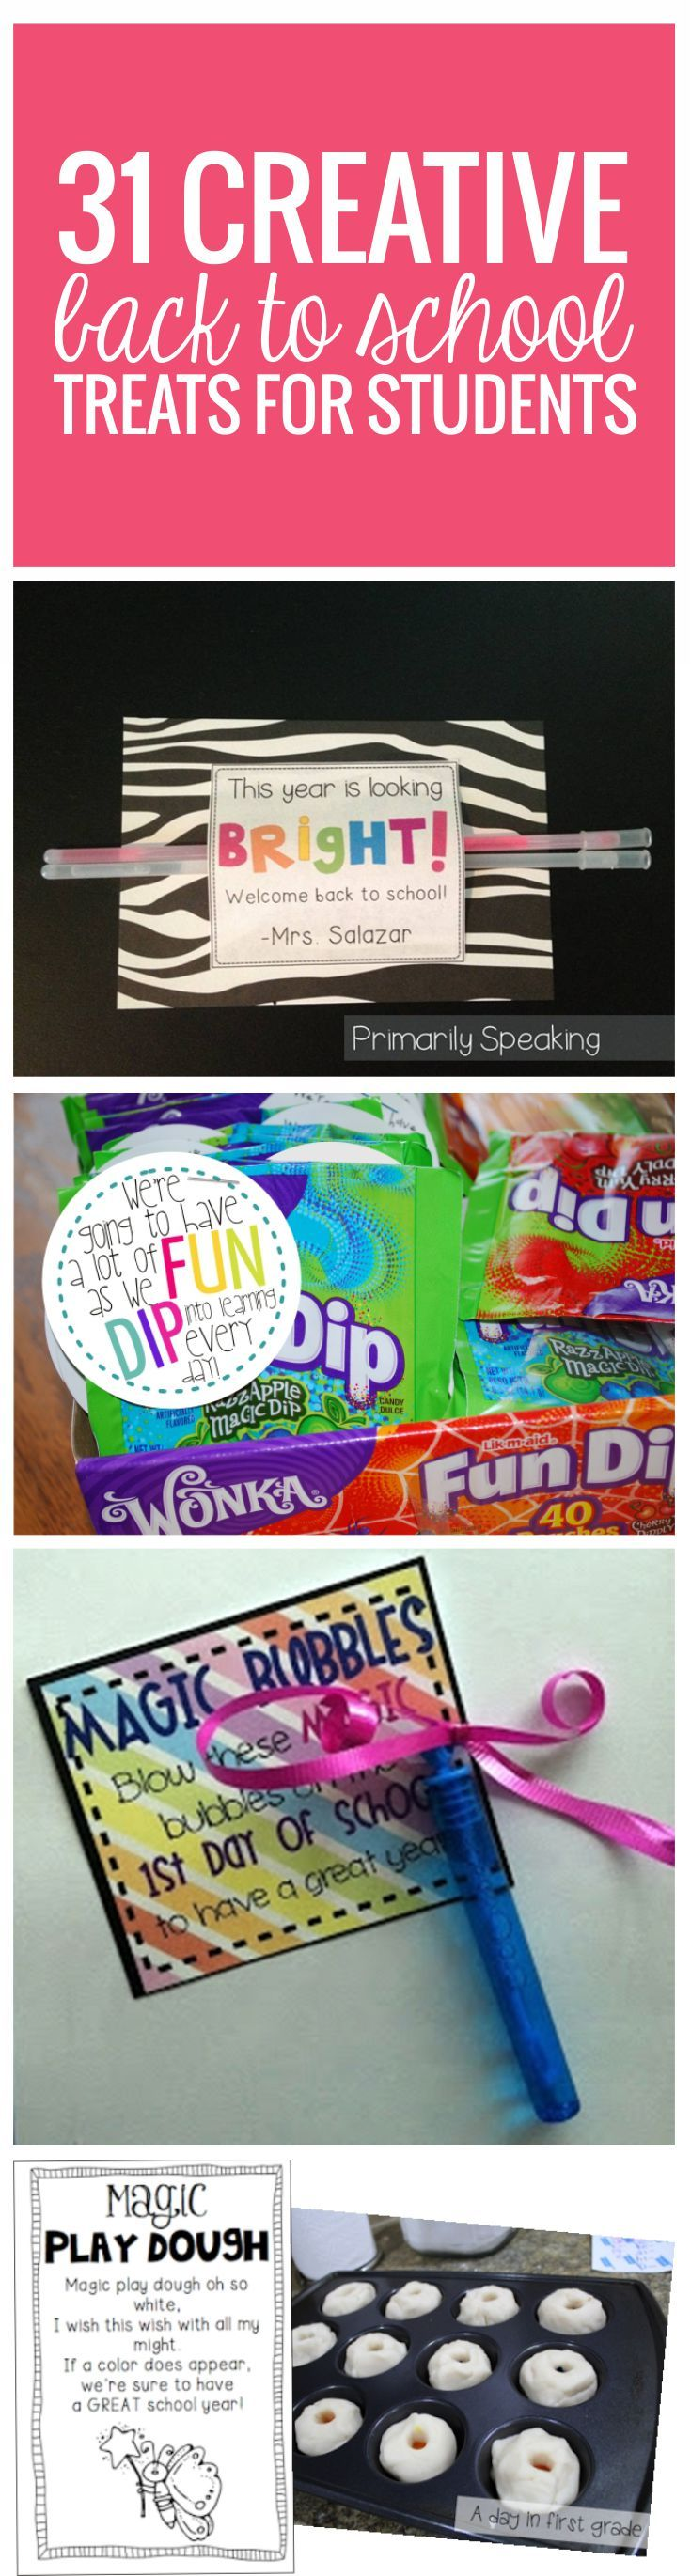 31 Creative Back to School Treats for Students {printables} from Teach Junkie 31 Creative Back to School Treats for Students - comes with free printables - love it